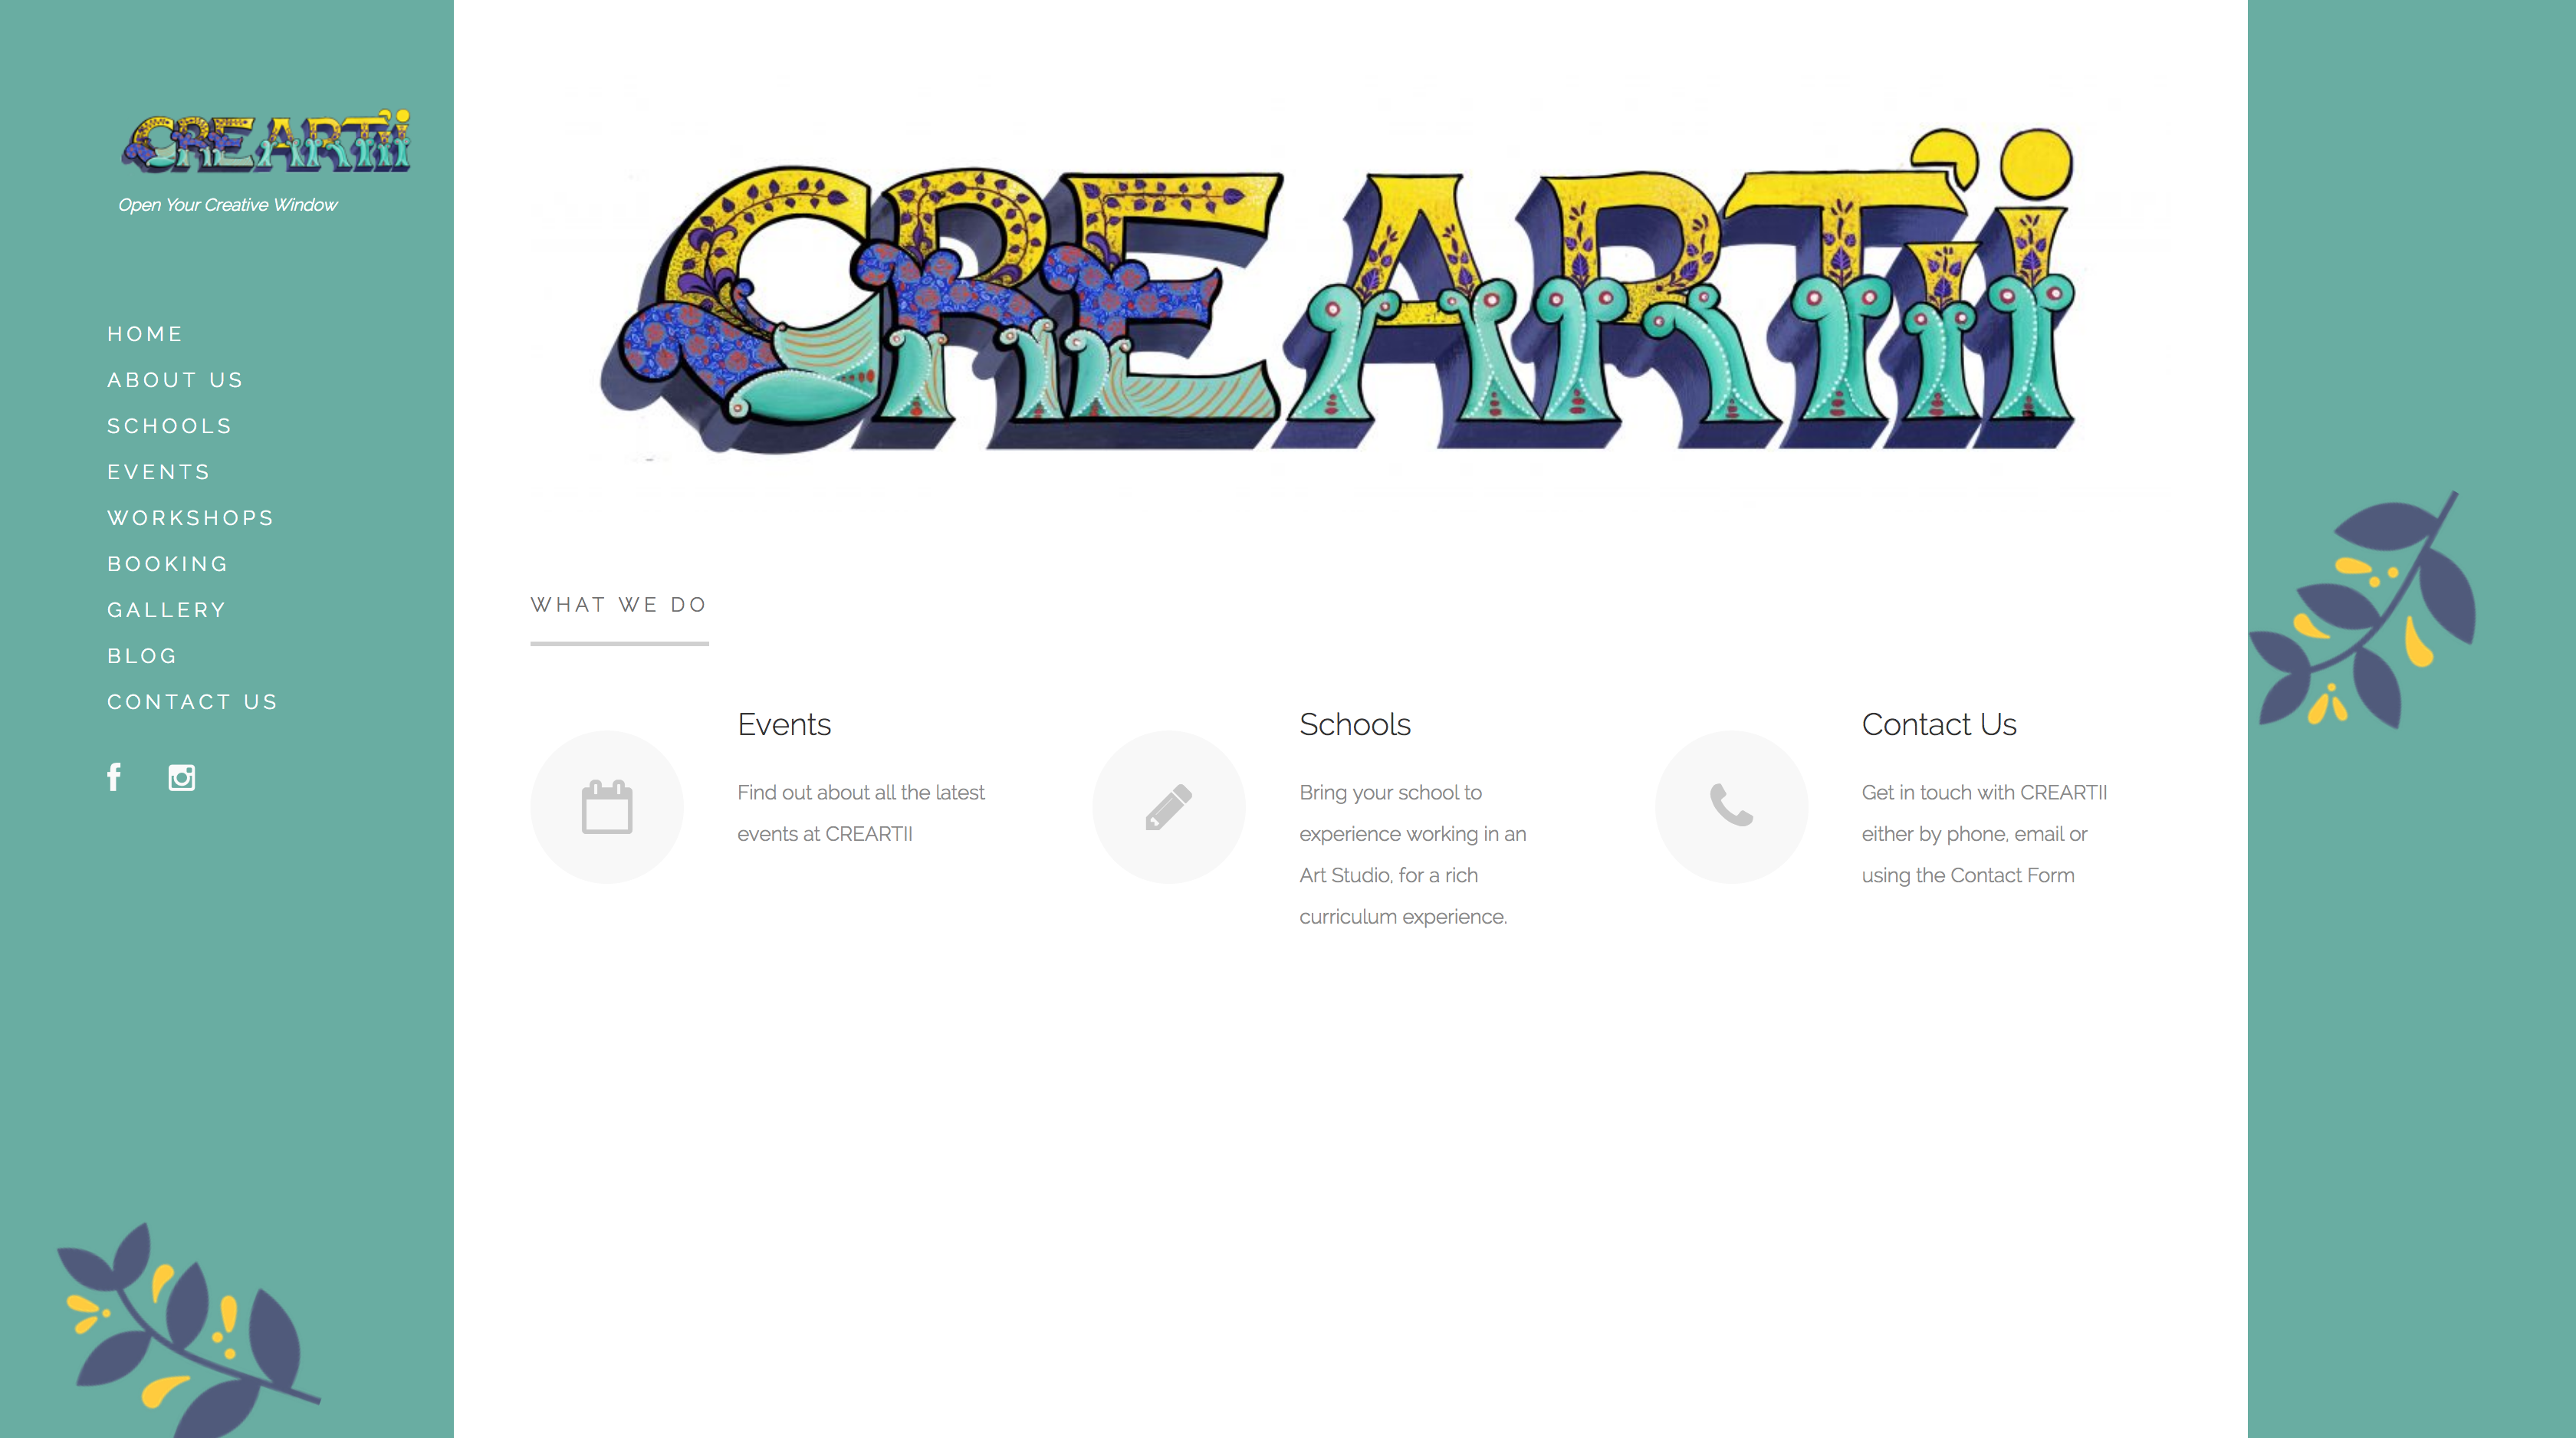 creartii homepage website design by High Heel Creative